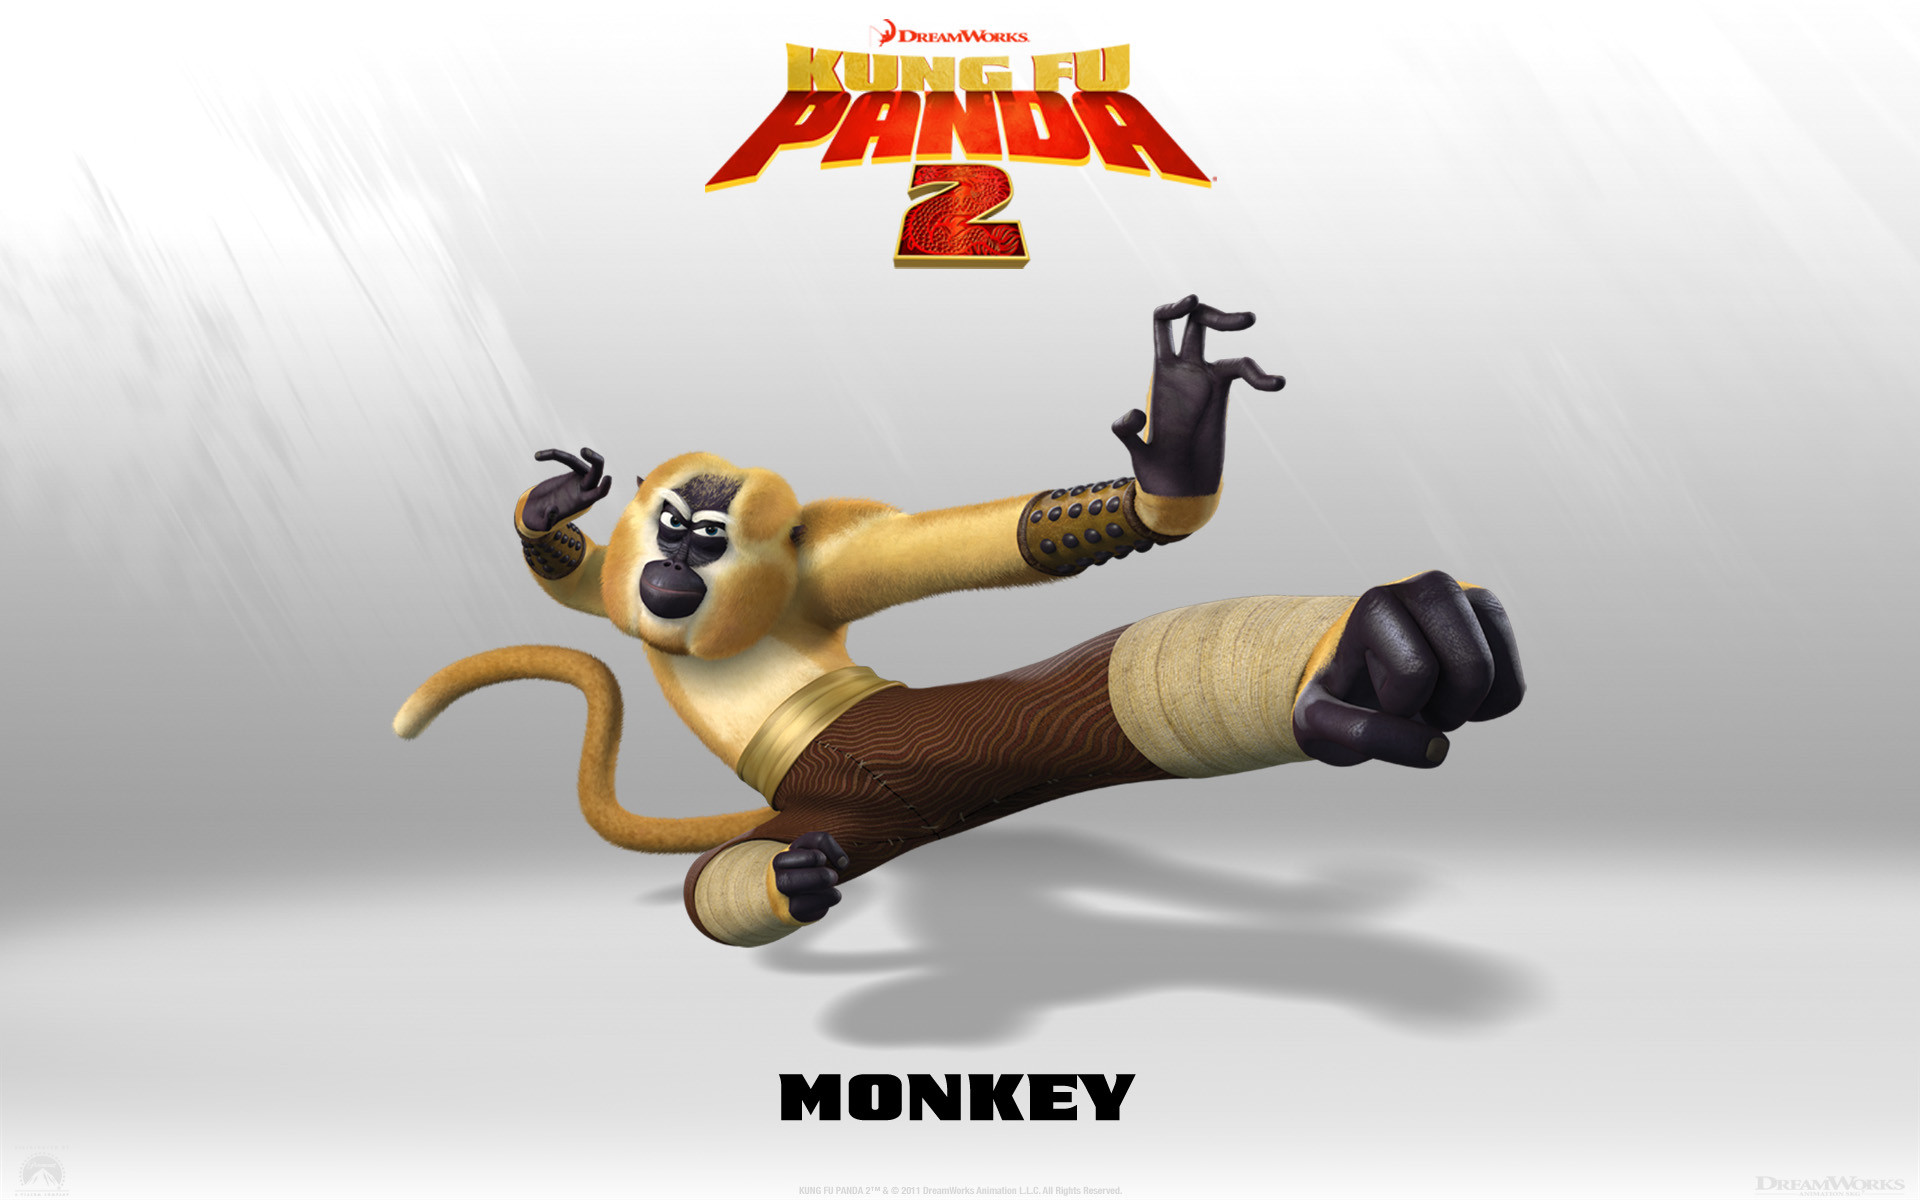 1920x1200 Monkey from Kung Fu Panda 2 Dreamworks CG animated movie wallpaper